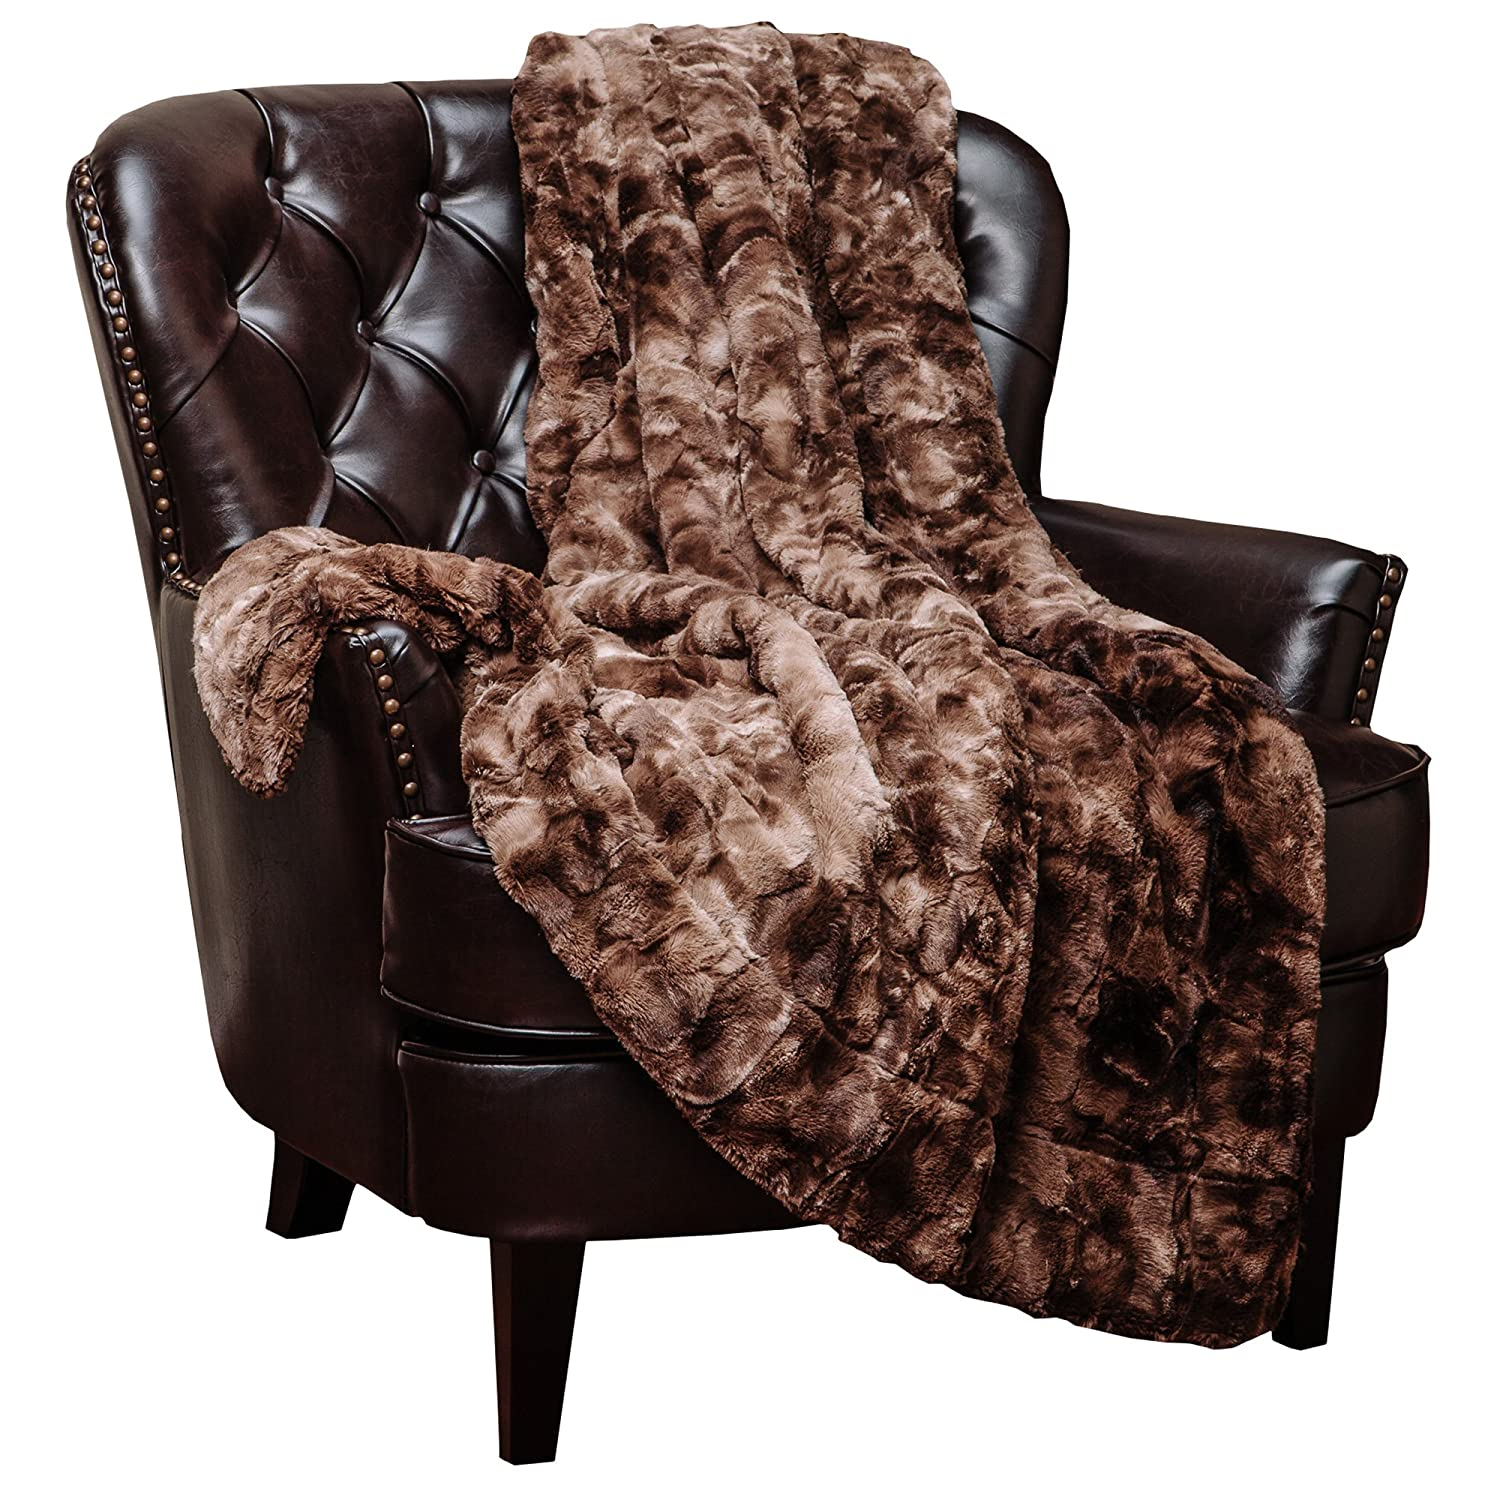 Variation Print Plush Sherpa Chocolate Fur Bed Blanket - Coffee Brown Wavy Fur Pattern Queen/Full